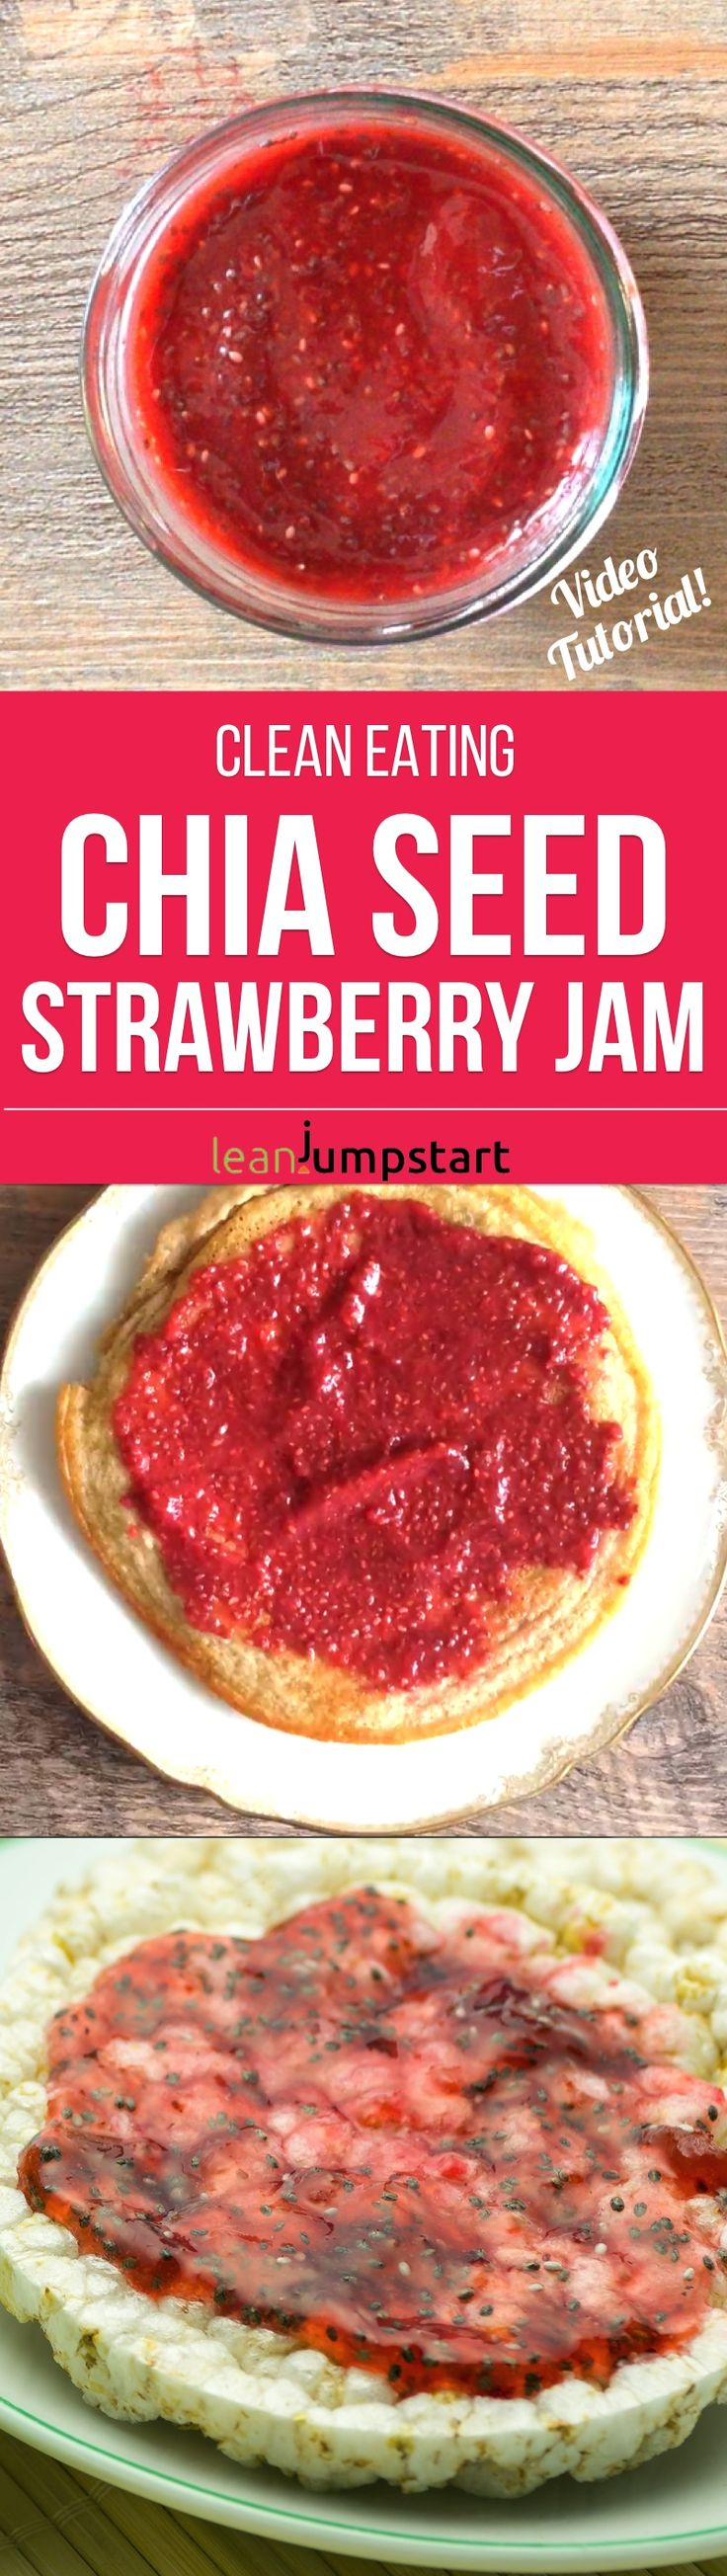 Need a sugar-free jam recipe? This clean eating strawberry chia jam is a delicious spread option for a healthy bit of deliciousness. Repin this and then click through to read about the chia seed jam and watch a short video tutorial.